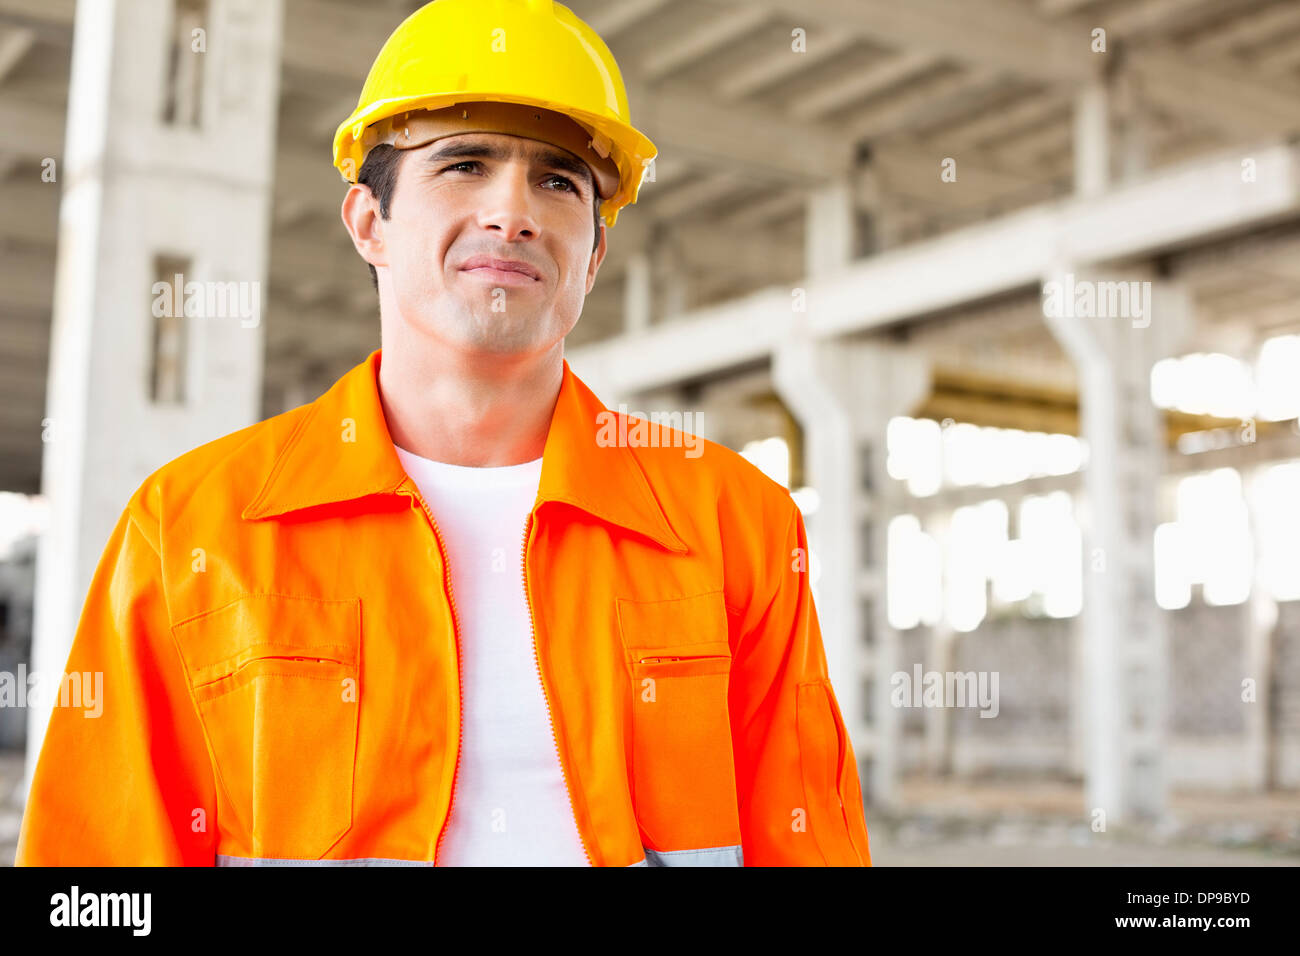 Handsome mid adult man wearing protective workwear at construction site - Stock Image